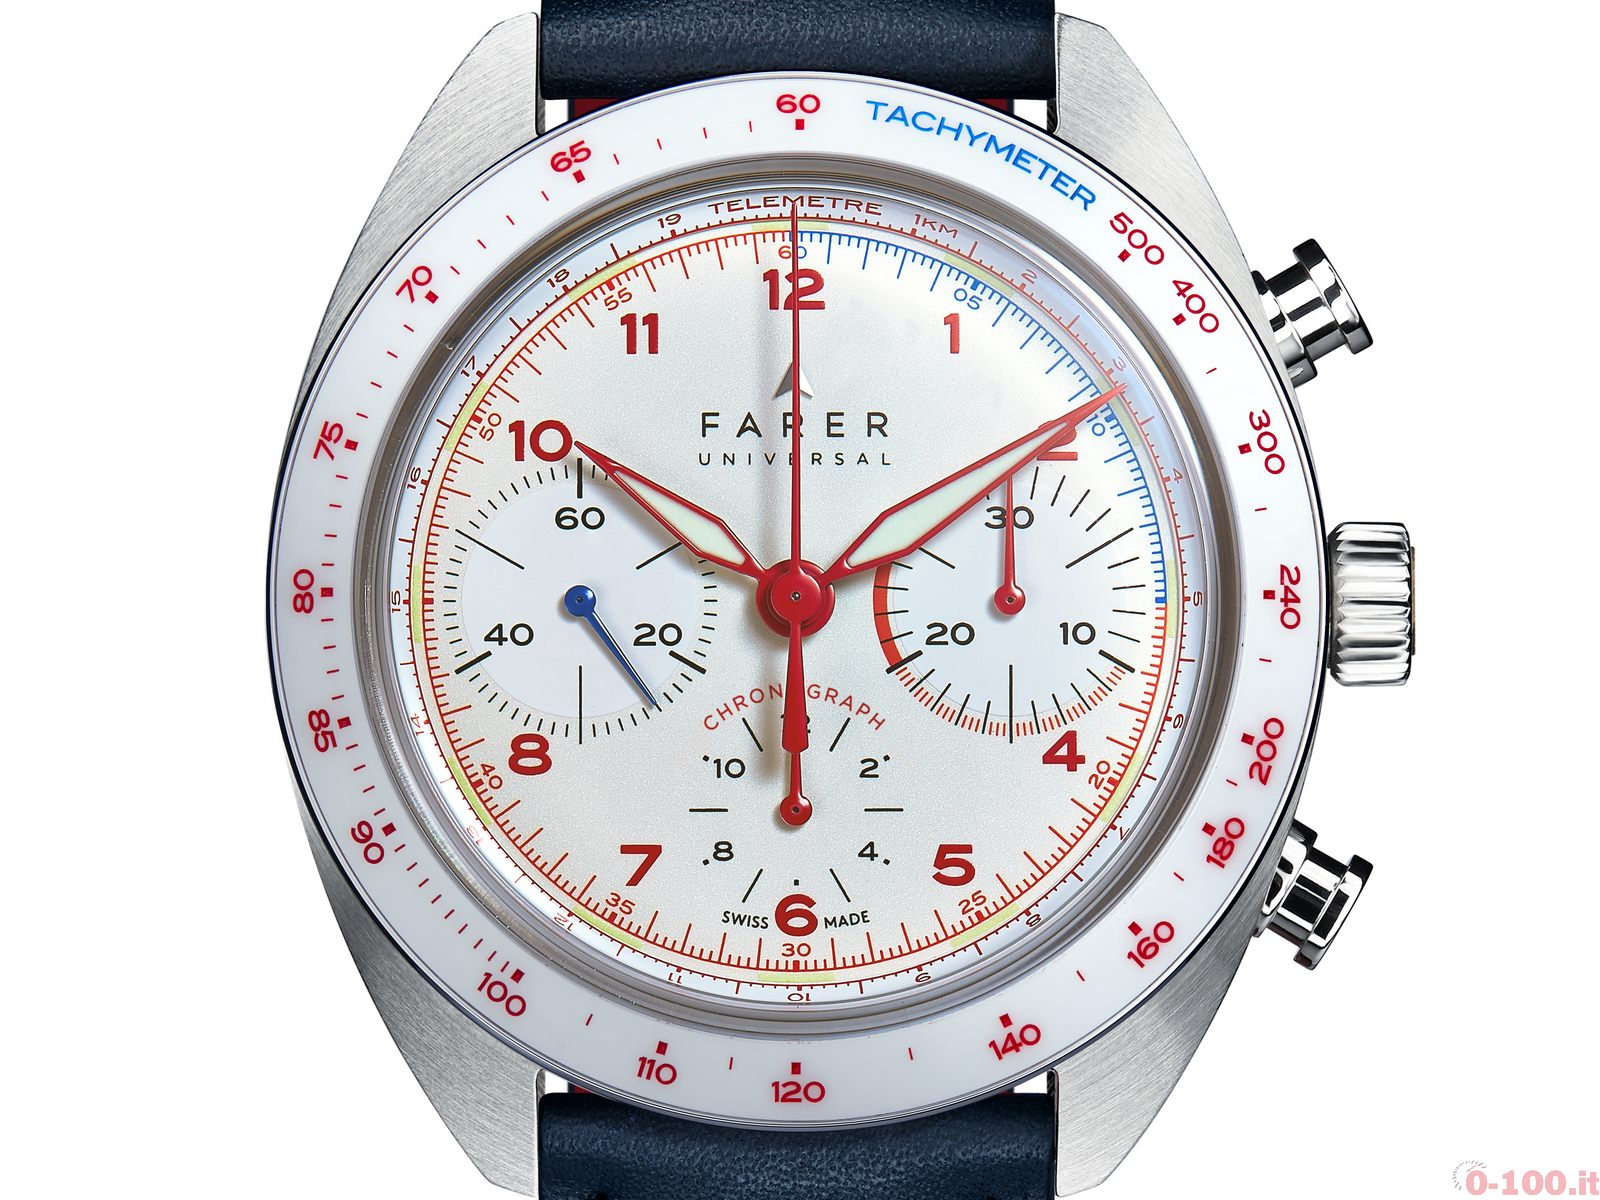 farer_bernina_chronograph_0-100_10